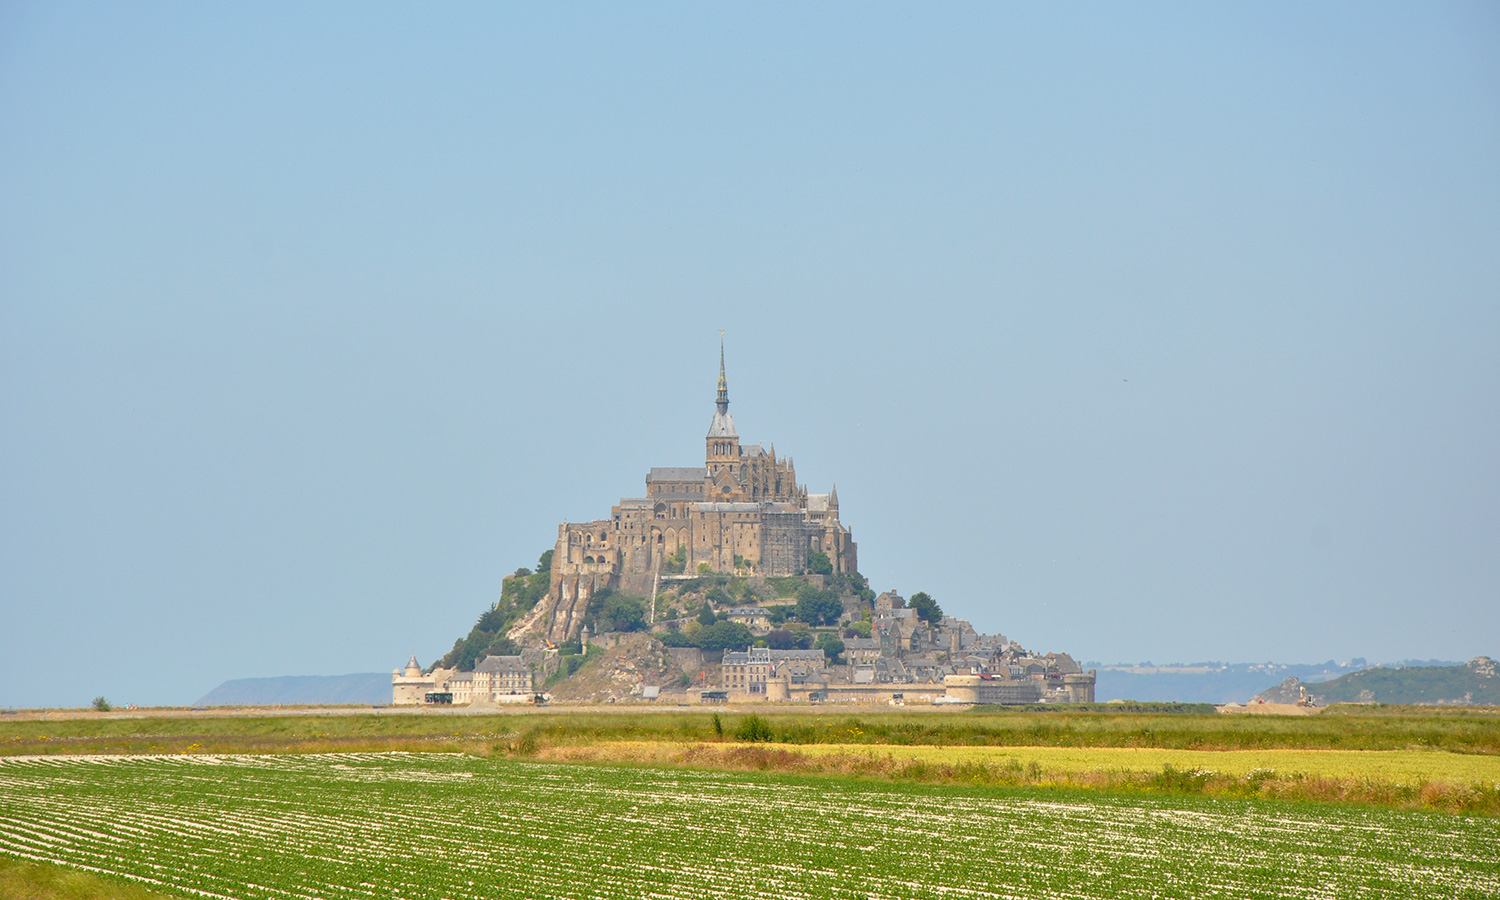 Mont Saint-Michel from mainland